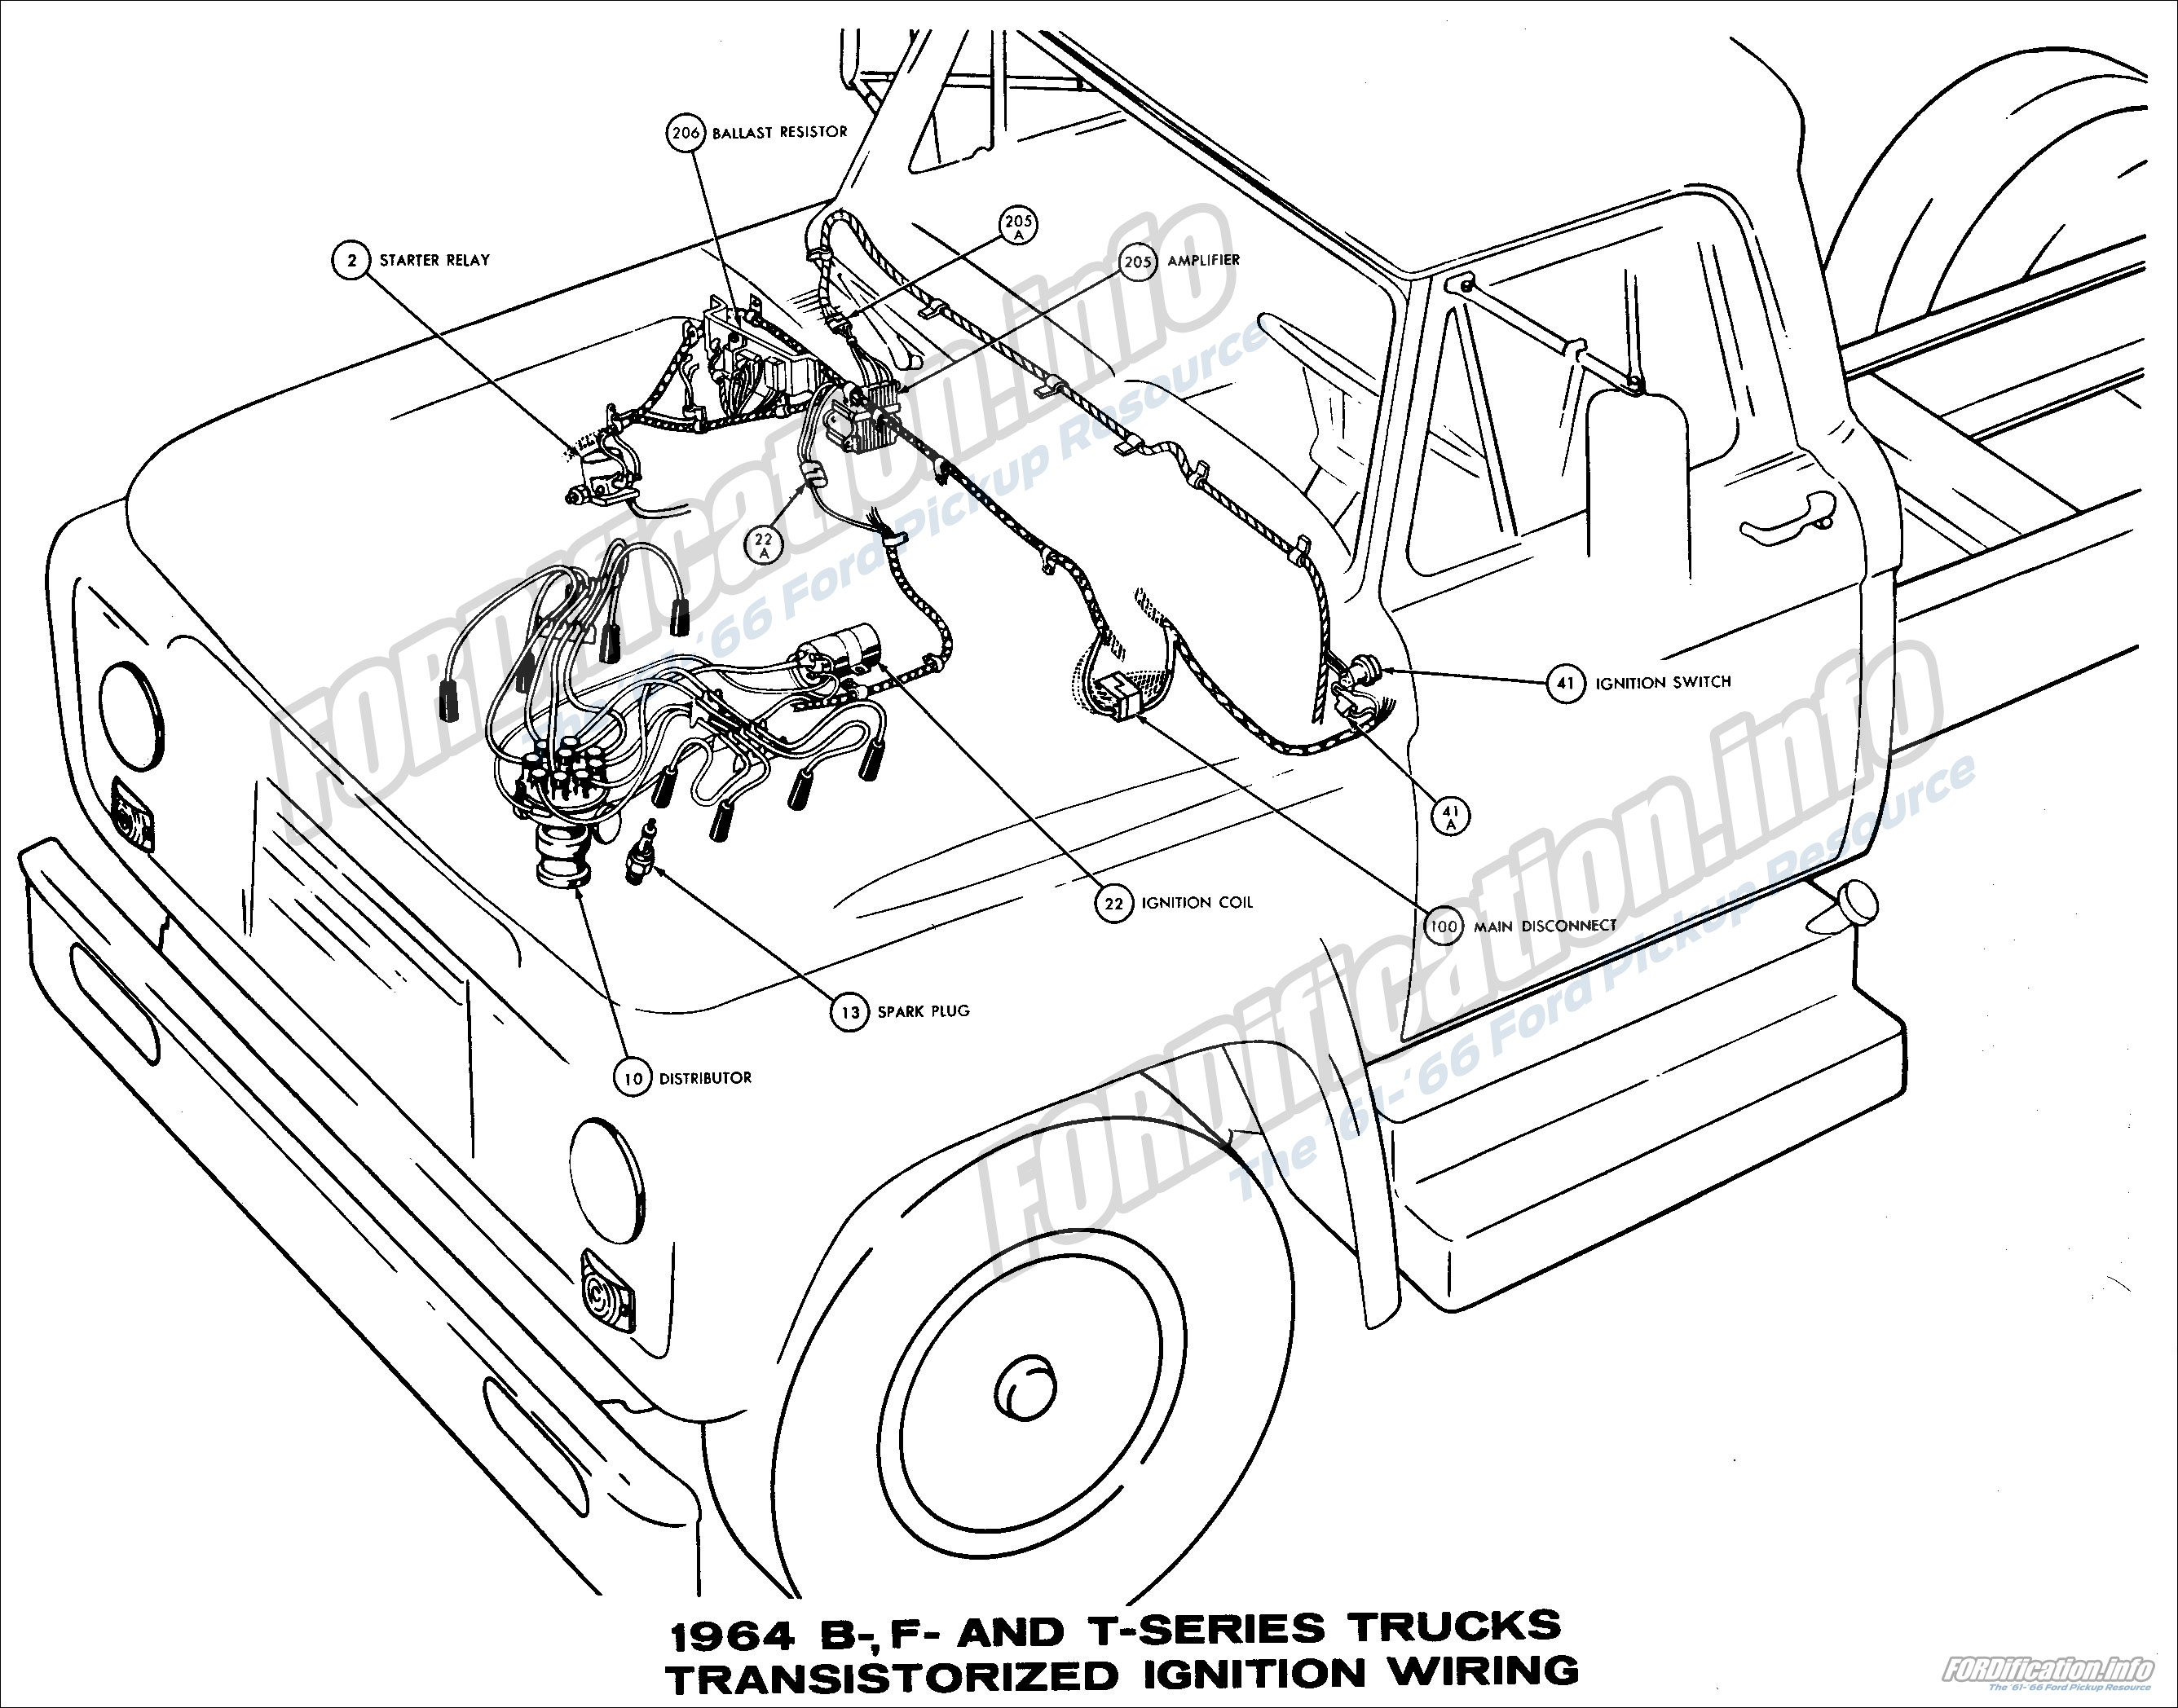 Ford Truck Drawing At Free For Personal Use 1949 Wiring Diagram On 1948 F1 Harness 2672x2096 1964 Diagrams